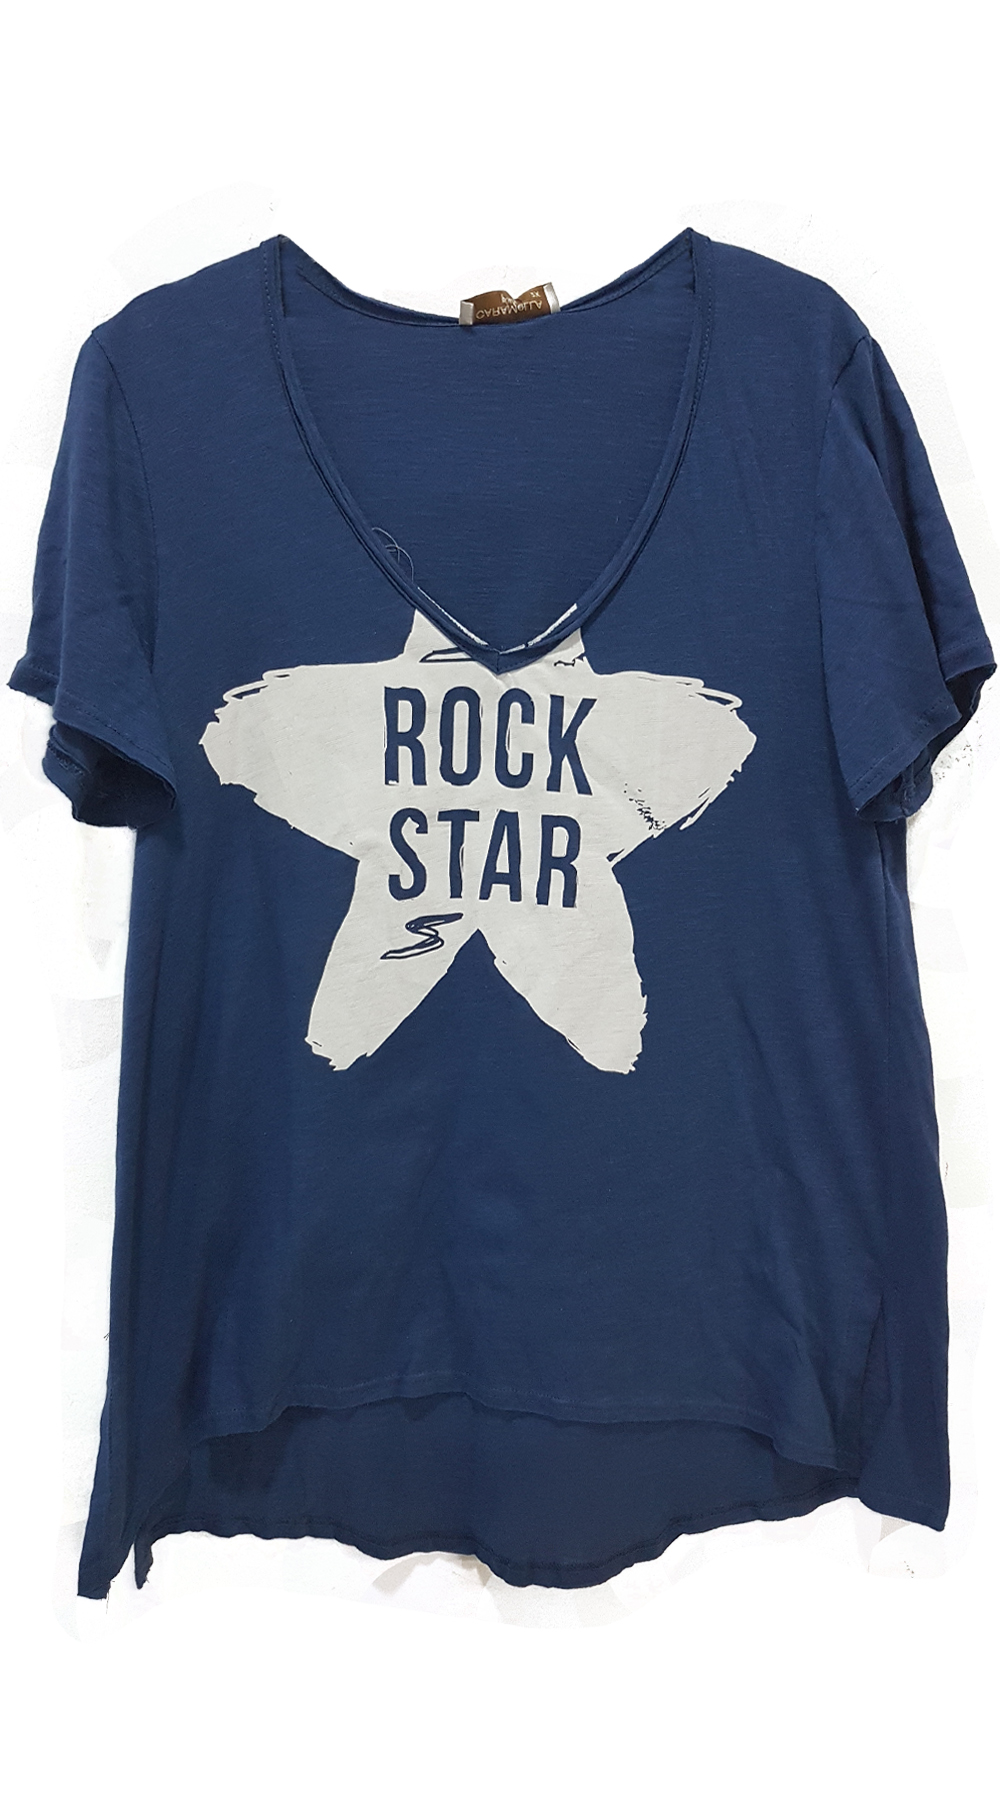 Curvy Γυναικείο t-shirt ROCK STAR - MissReina - SP18CMC-15005 μπλούζες   t shirts basic t shirts